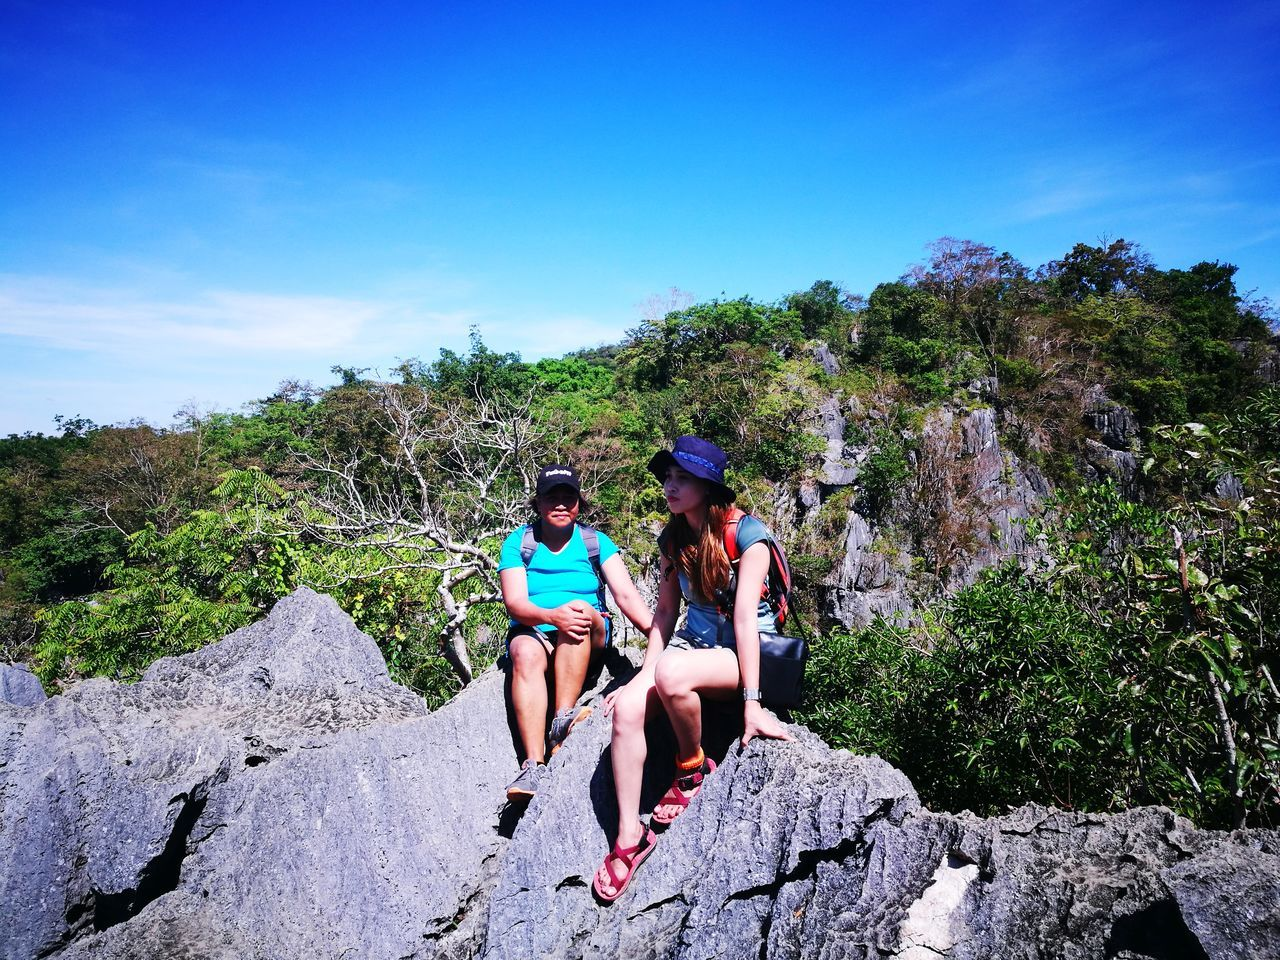 Viewdeck Friendship Togetherness Explorer Two People Adventure Mother Nature Is Amazing Motherdaughterbonding